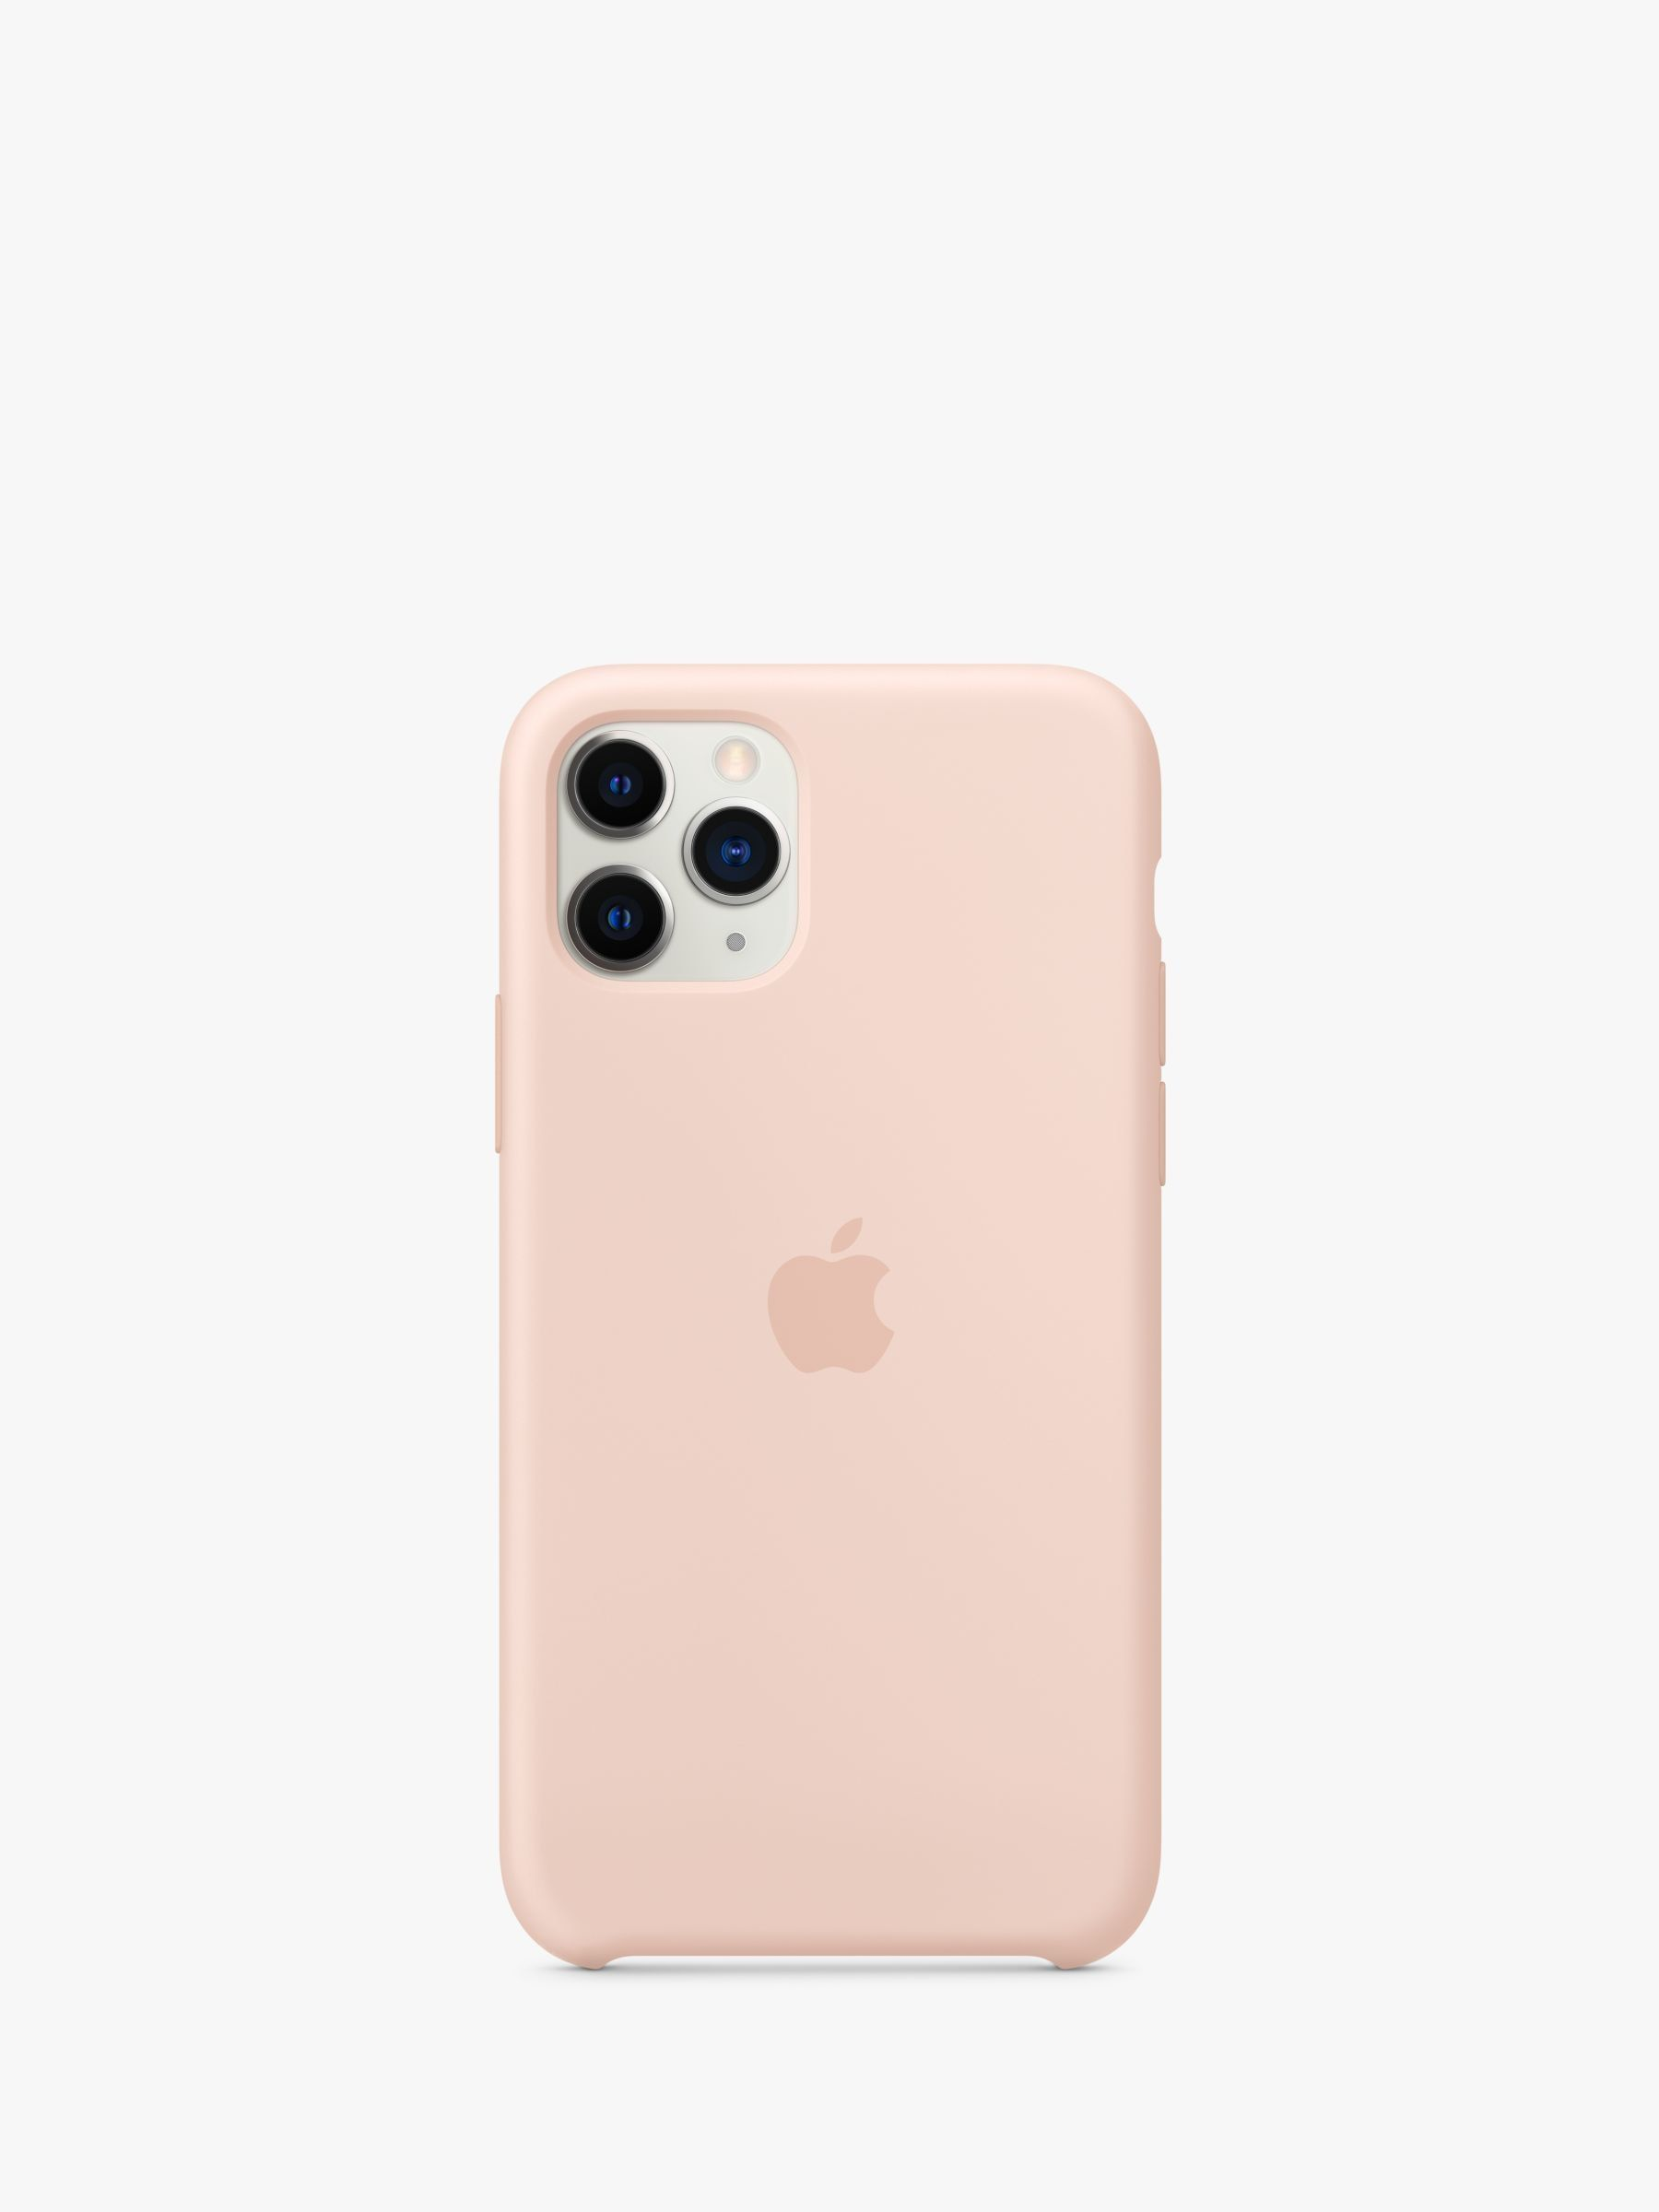 Apple silicone case for iphone 11 pro pink sand iphone